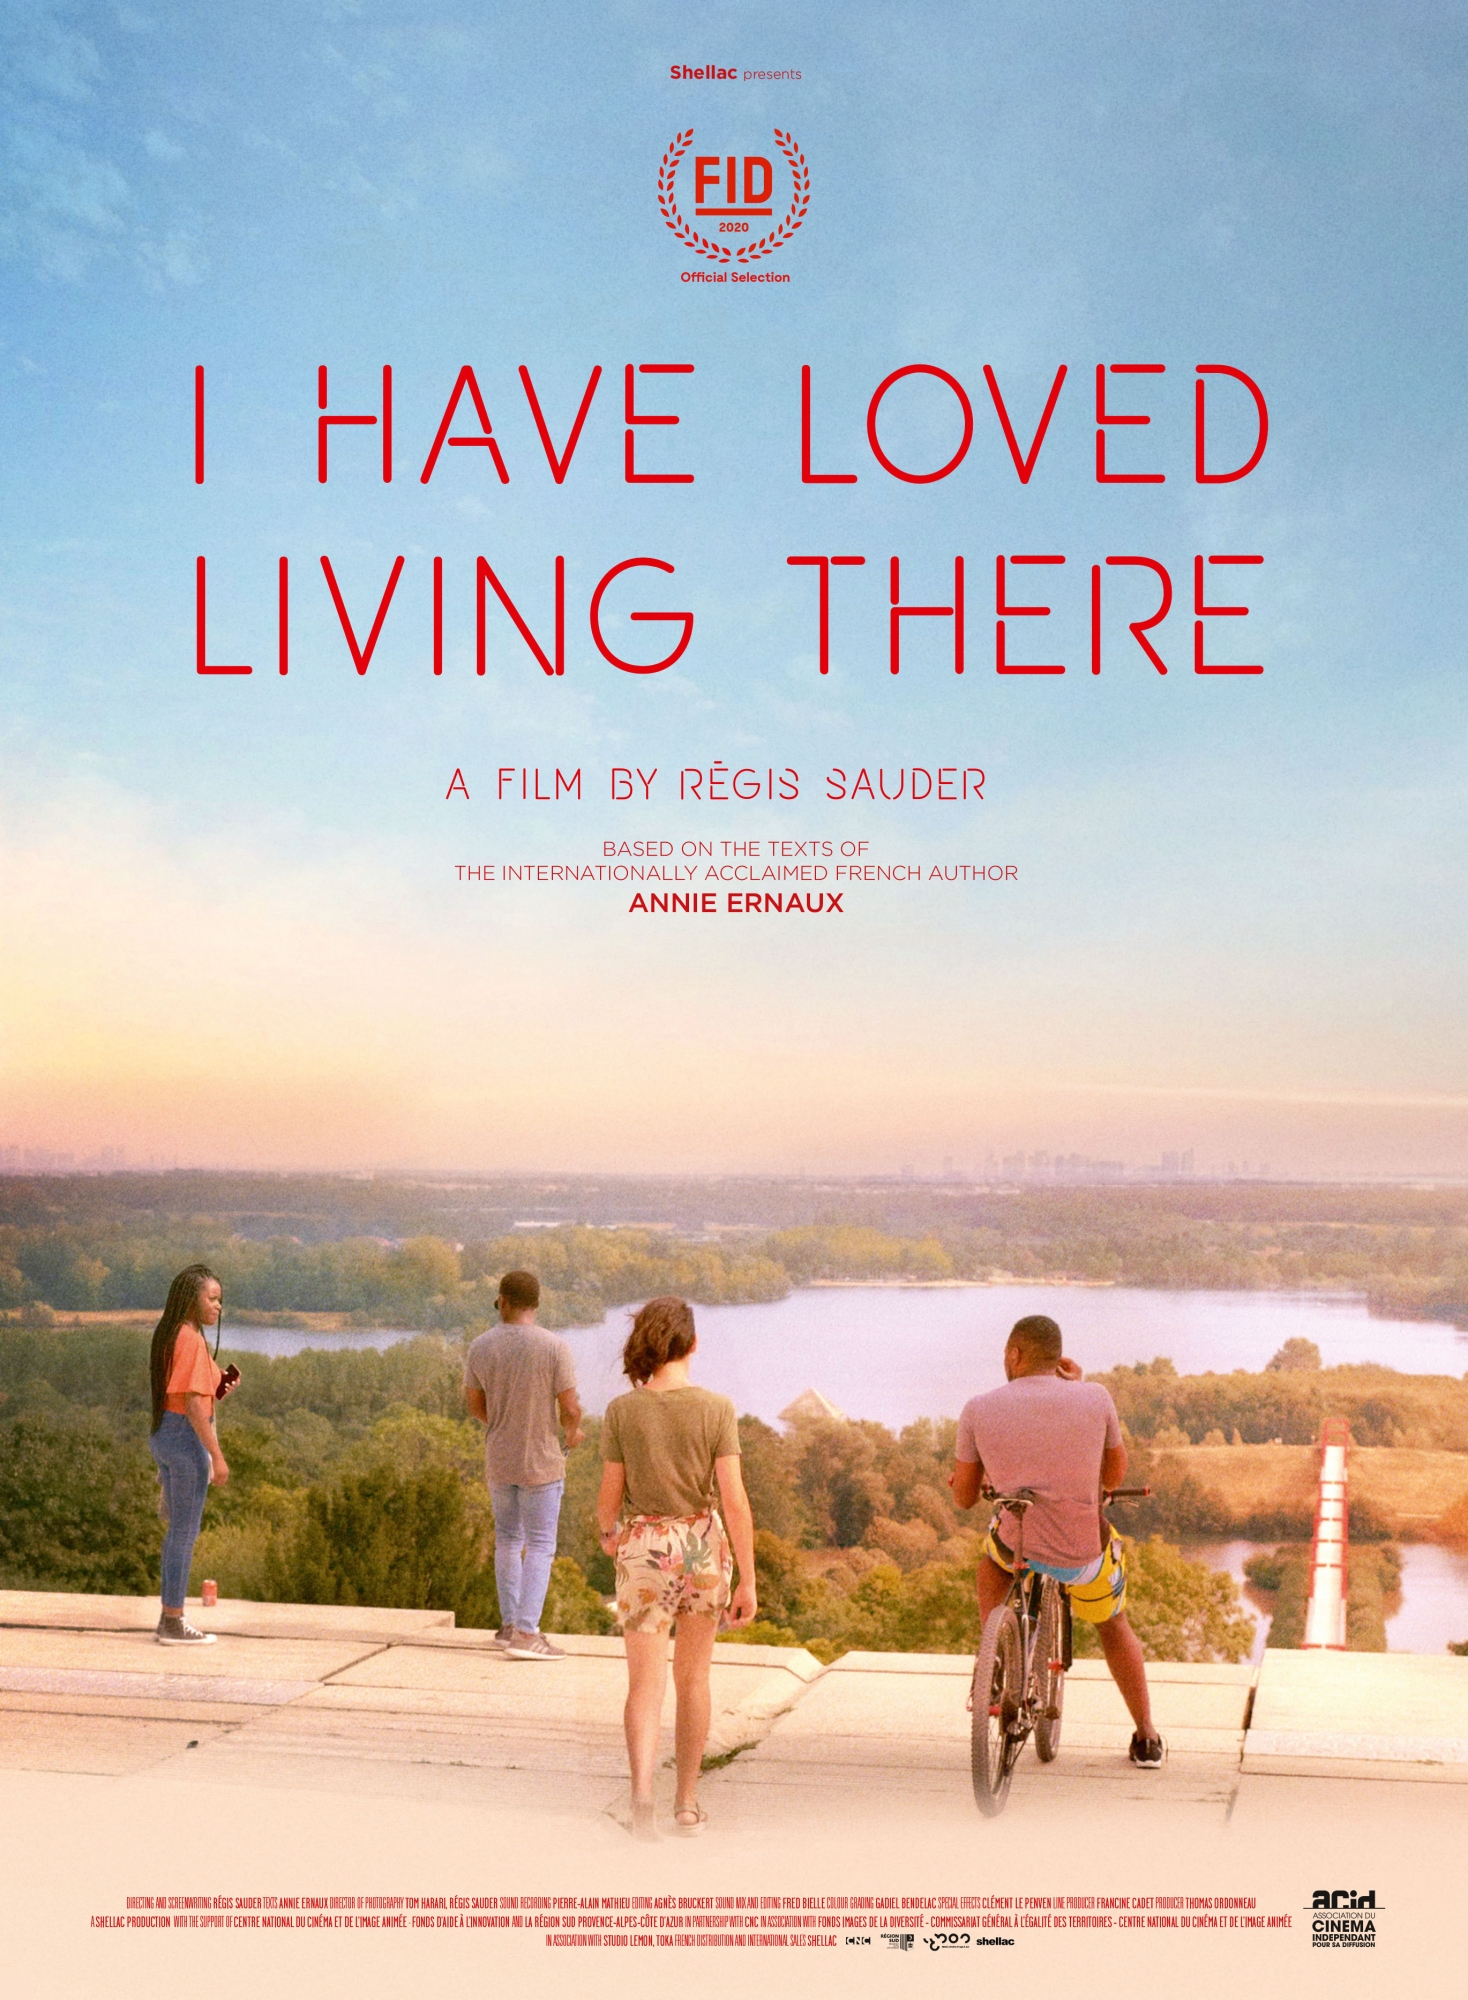 shellac-i-have-loved-living-there-poster-3391.jpg